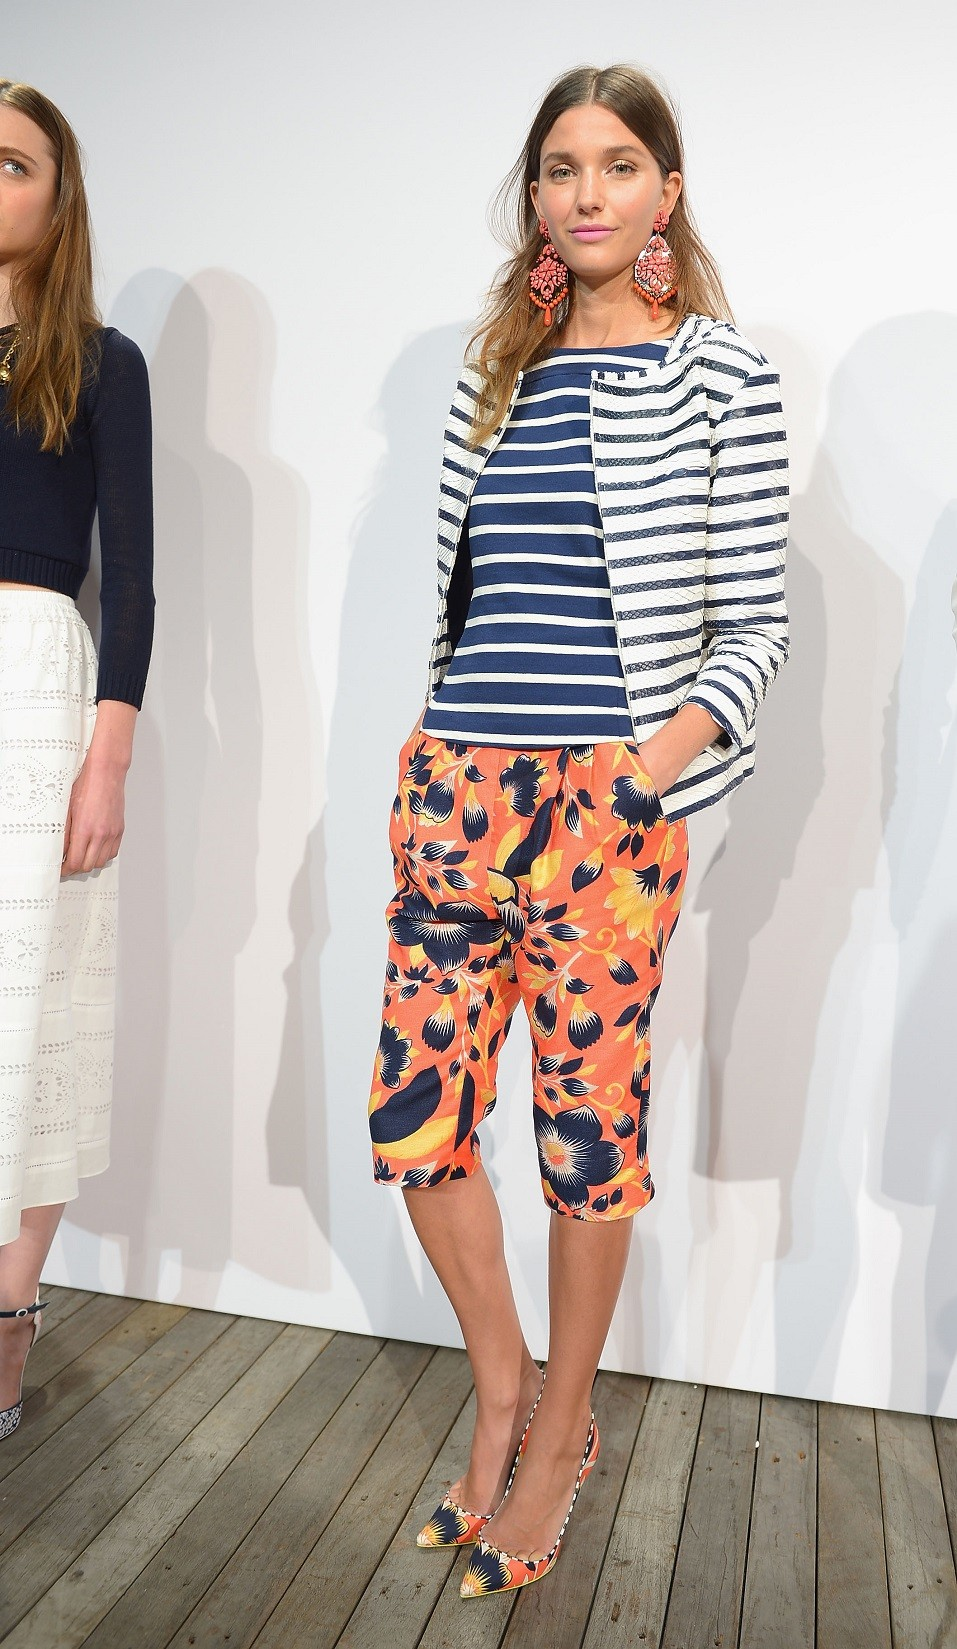 A model poses on the runway at the J.Crew presentation during Mercedes-Benz Fashion Week